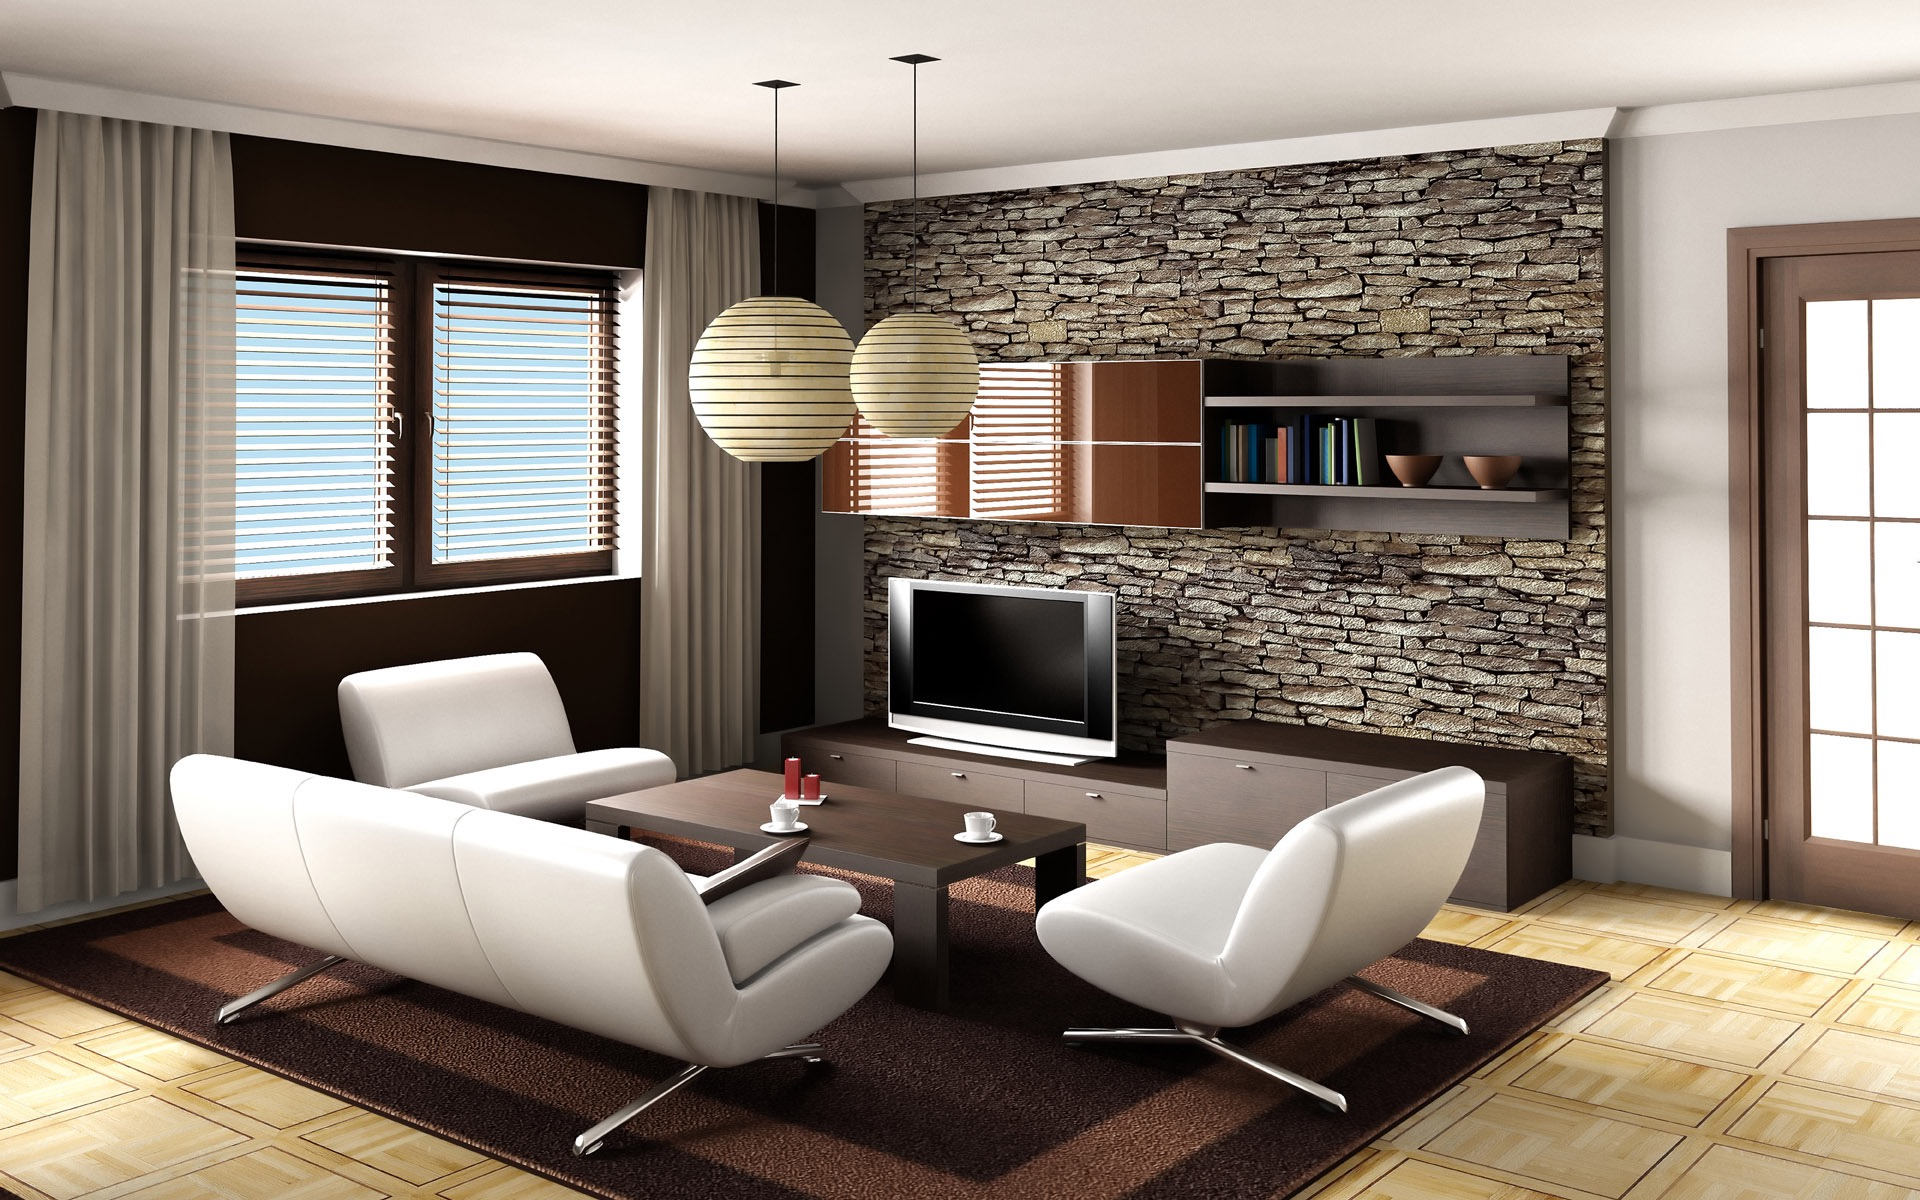 Minimalist Modern Living Room (Image 13 of 24)